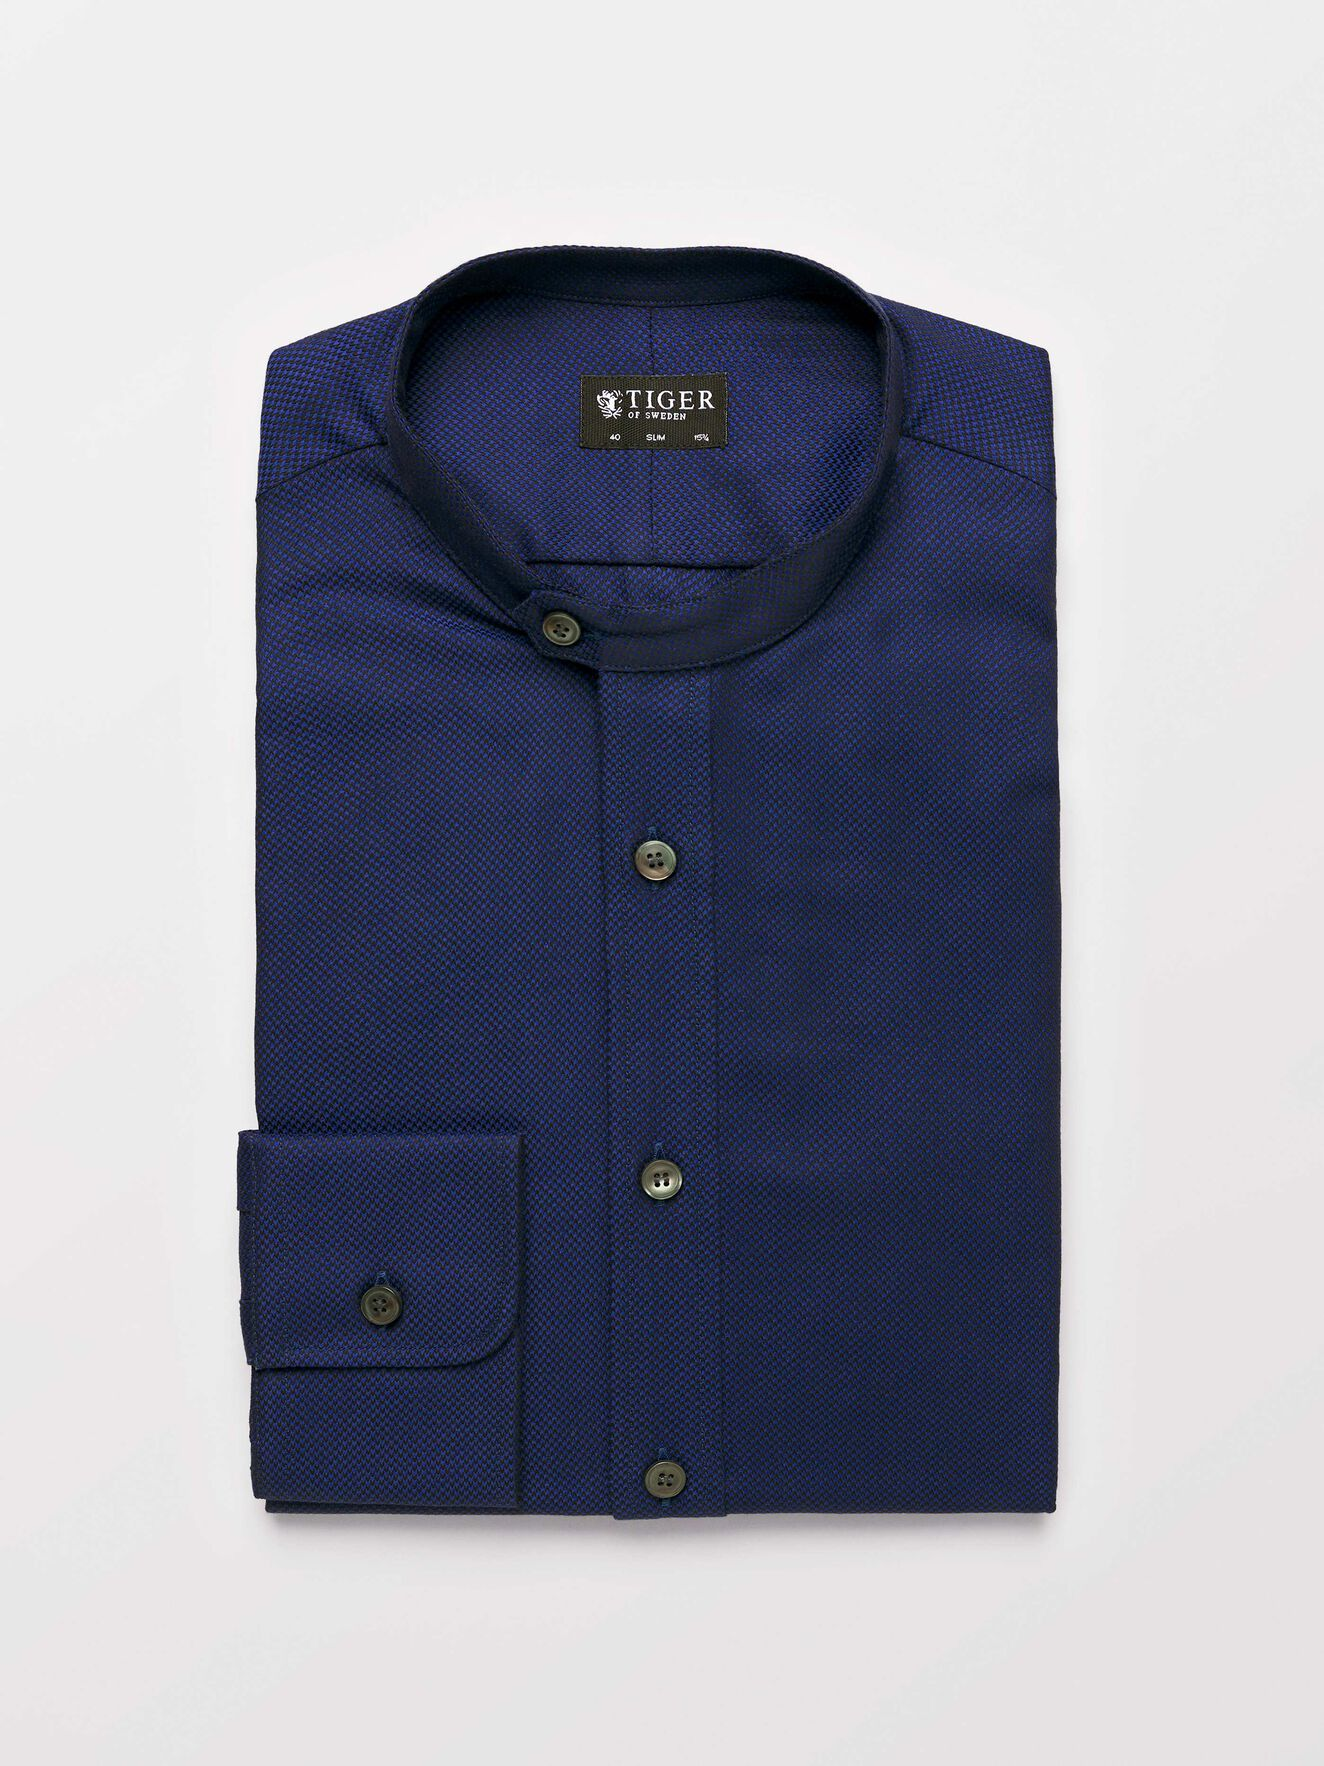 Ferante Shirt in Royal Blue from Tiger of Sweden